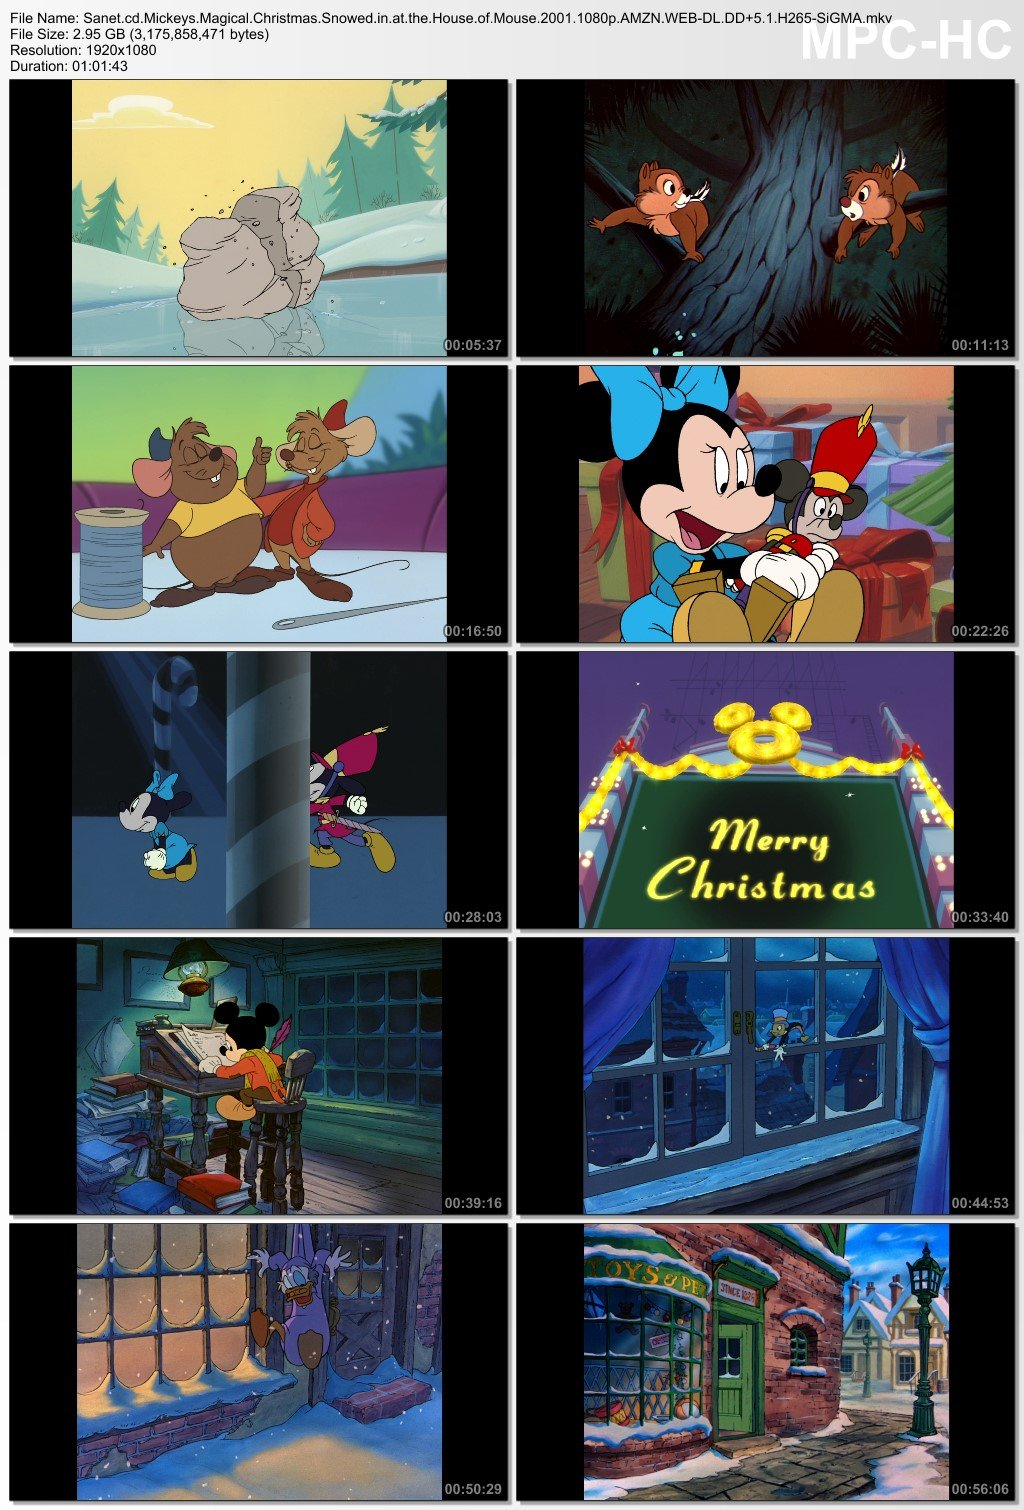 Mickeys Magical Christmas Snowed In At The House Of Mouse.Download Mickeys Magical Christmas Snowed In At The House Of